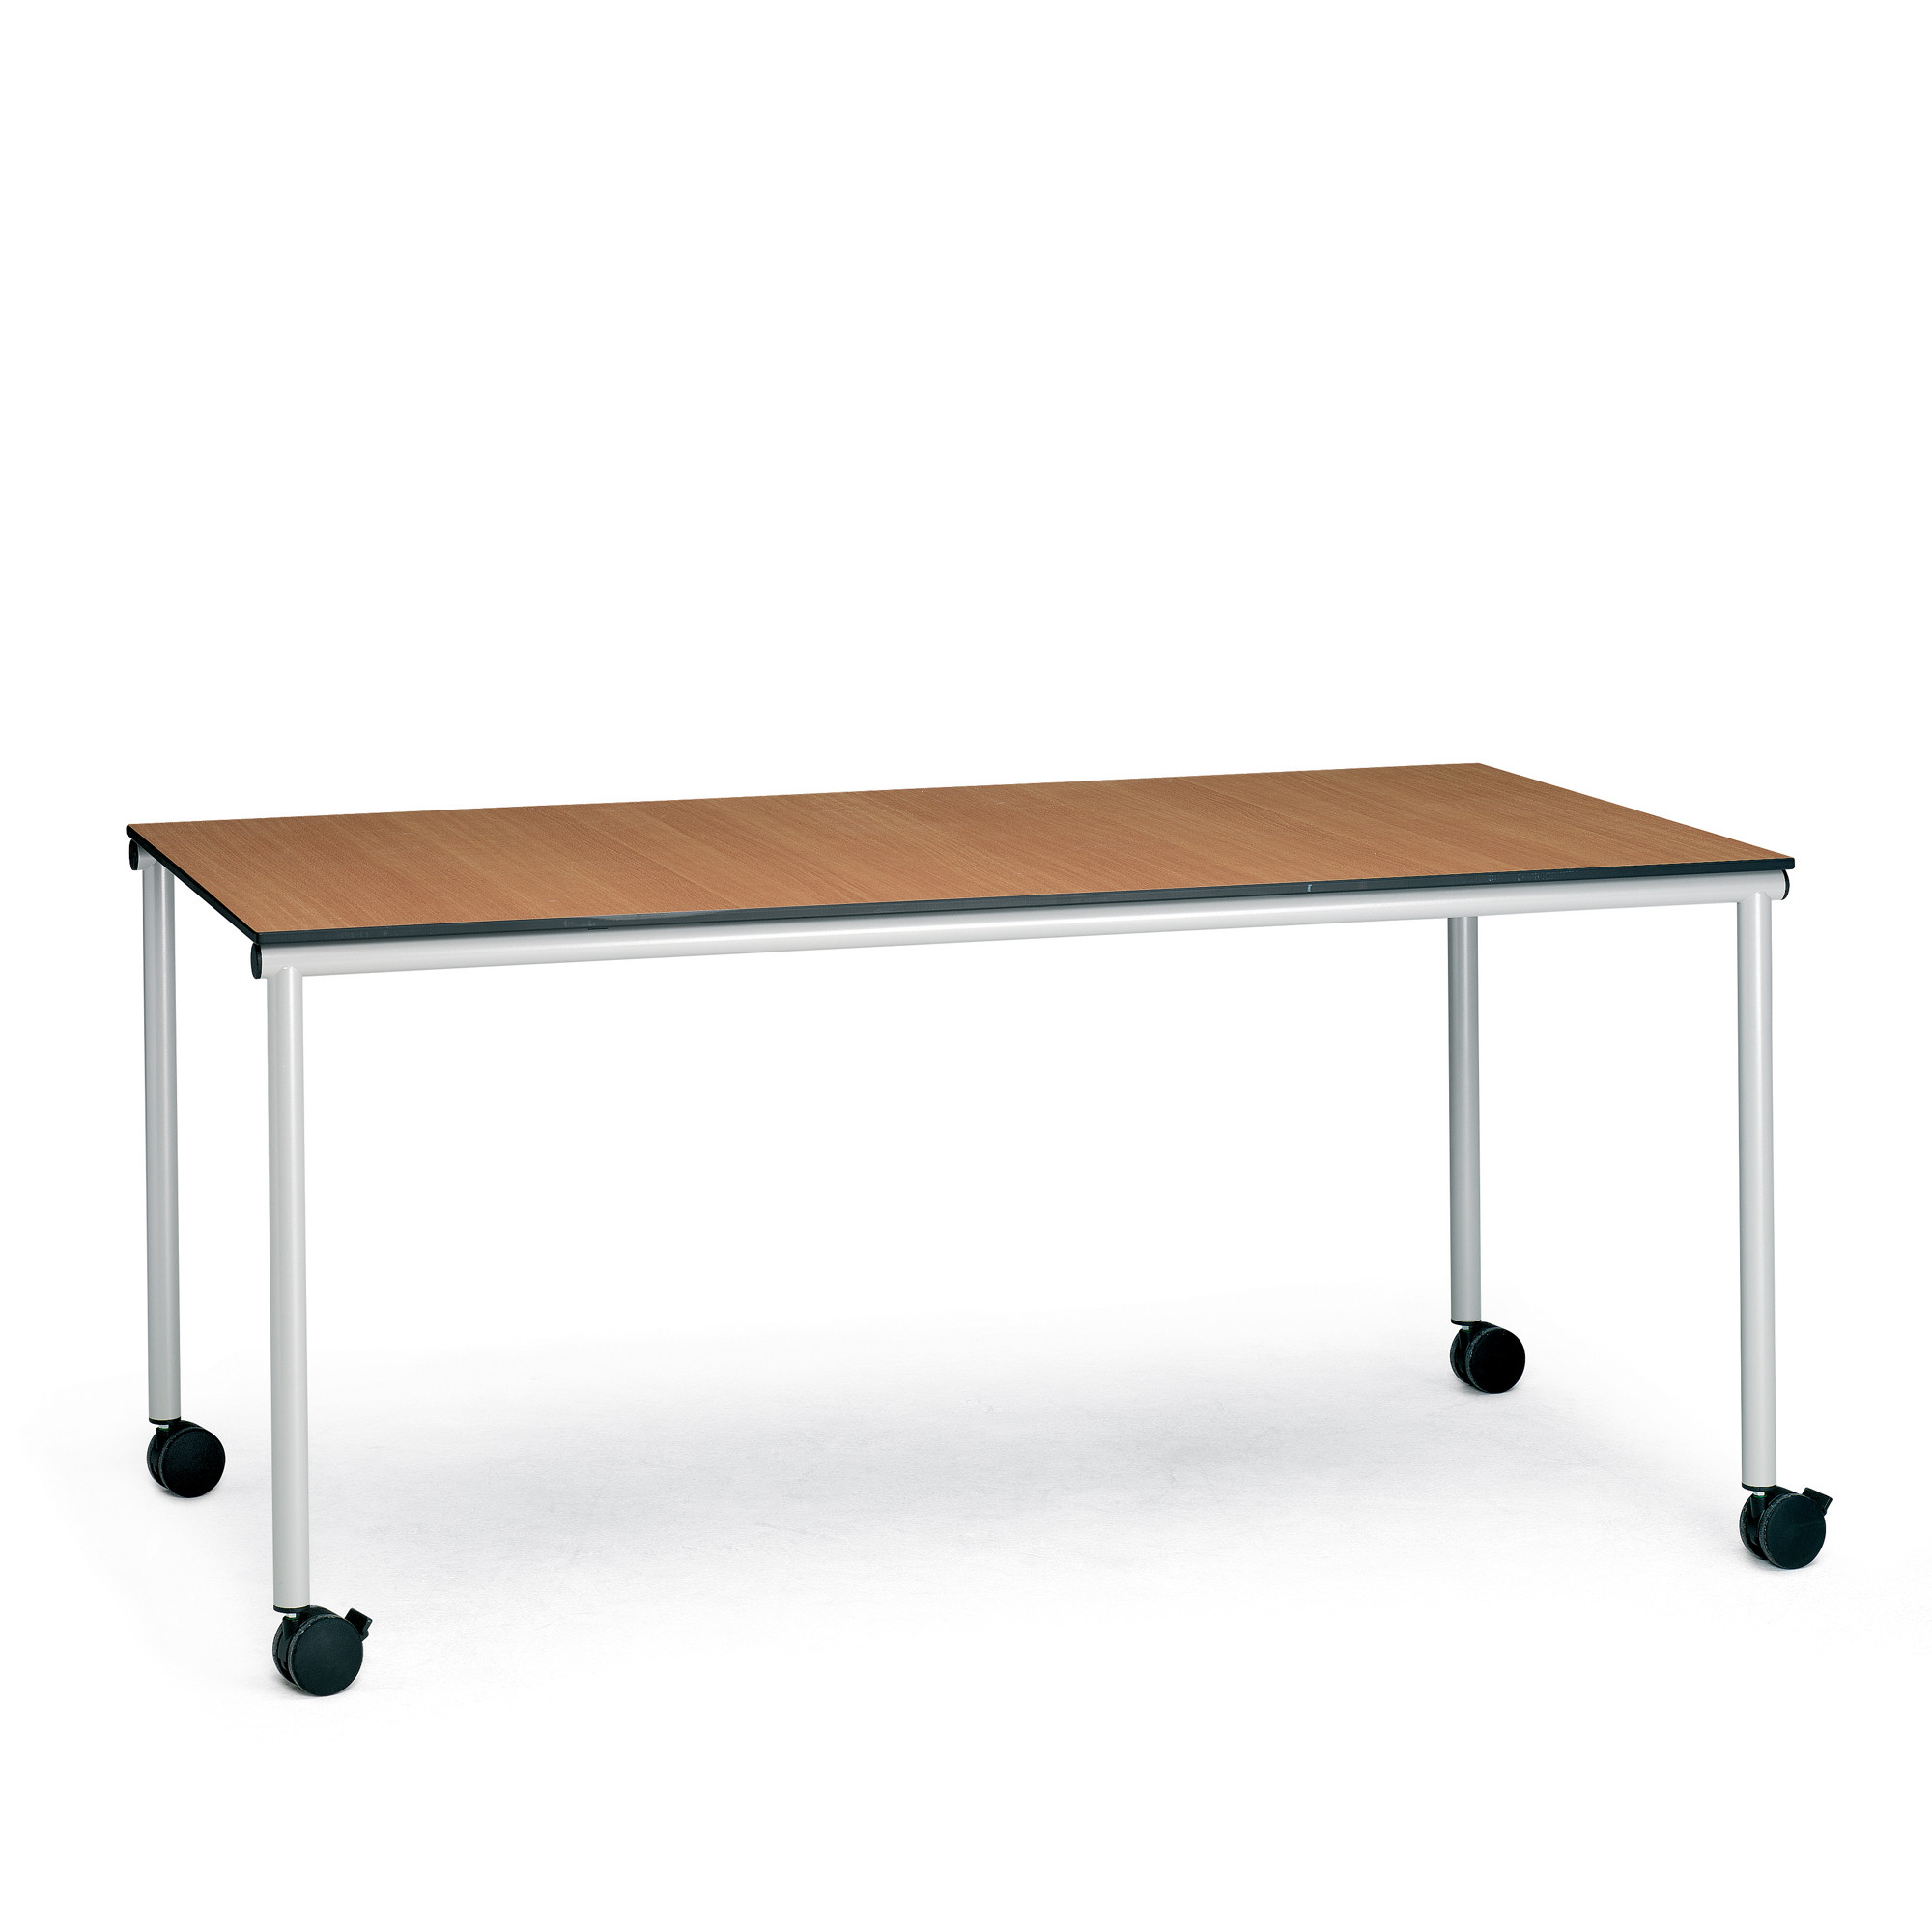 Ahrend 310 Training Table on castors